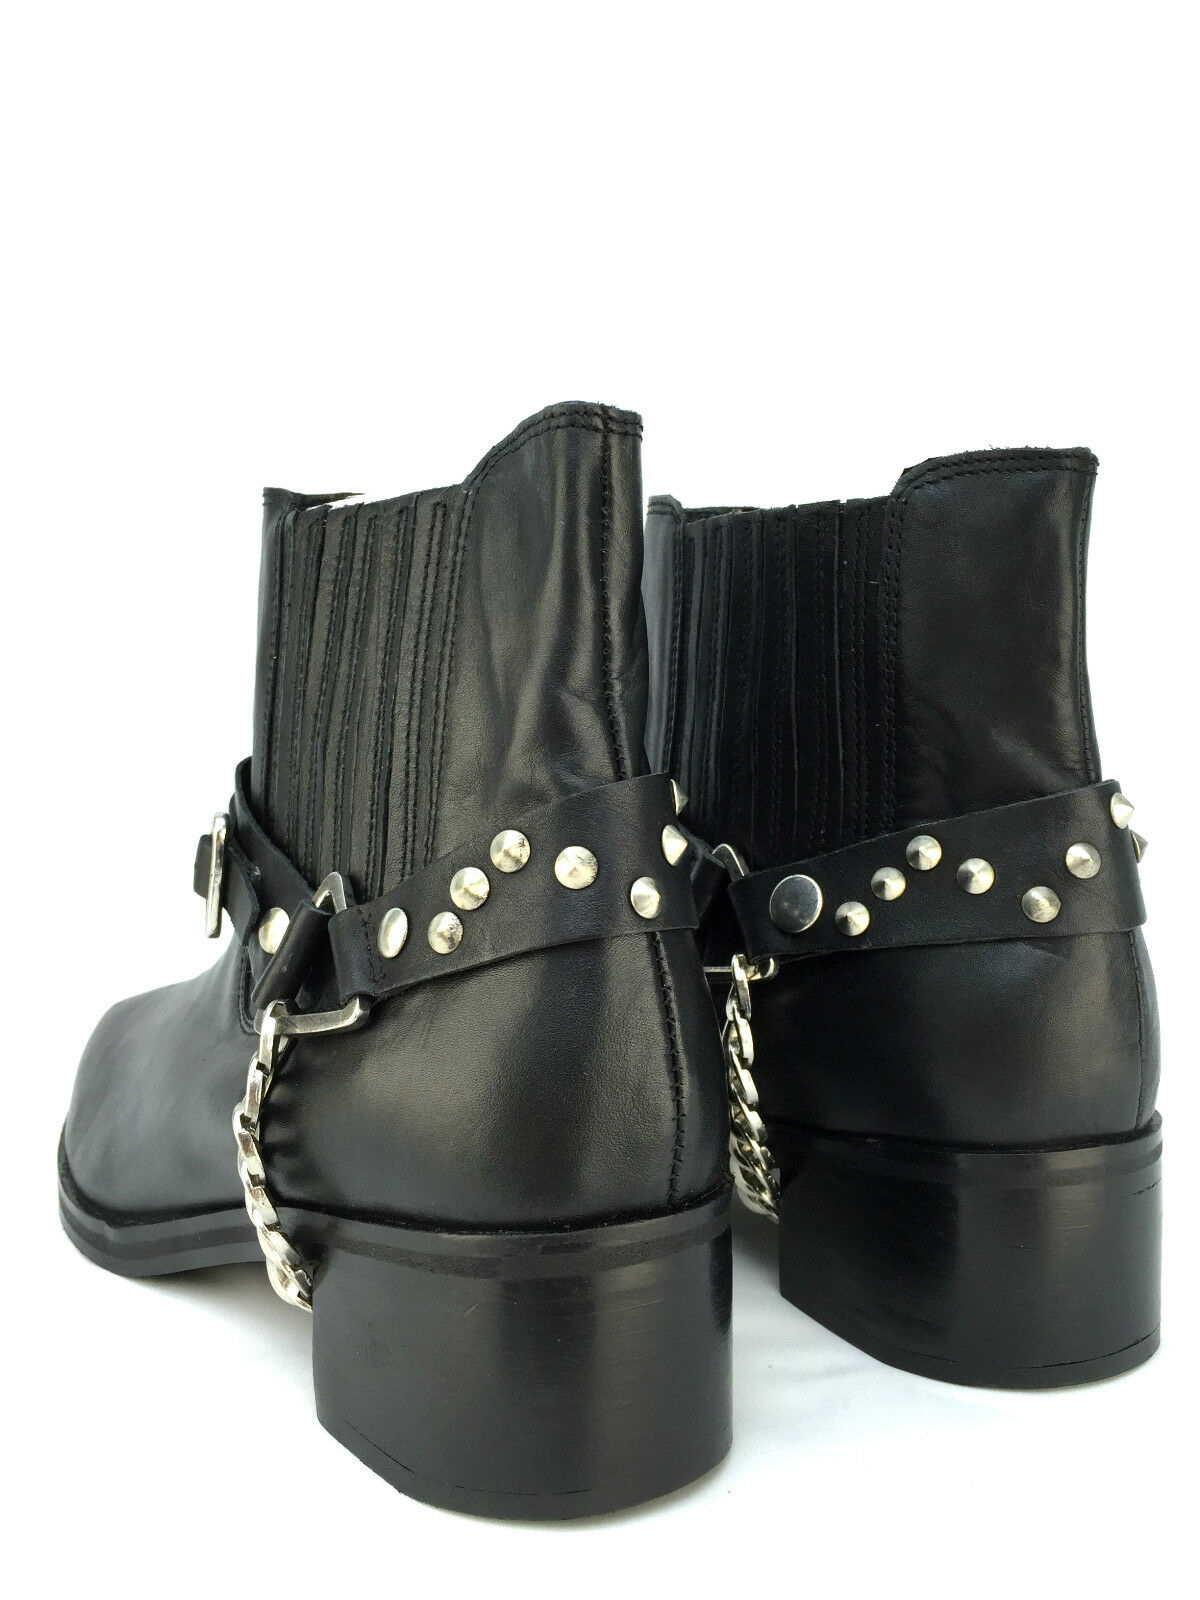 TOPSHOP Damenschuhe STUDDED ANKLE UK Stiefel Schuhe UK 3 UK ANKLE 8 c1a3f5